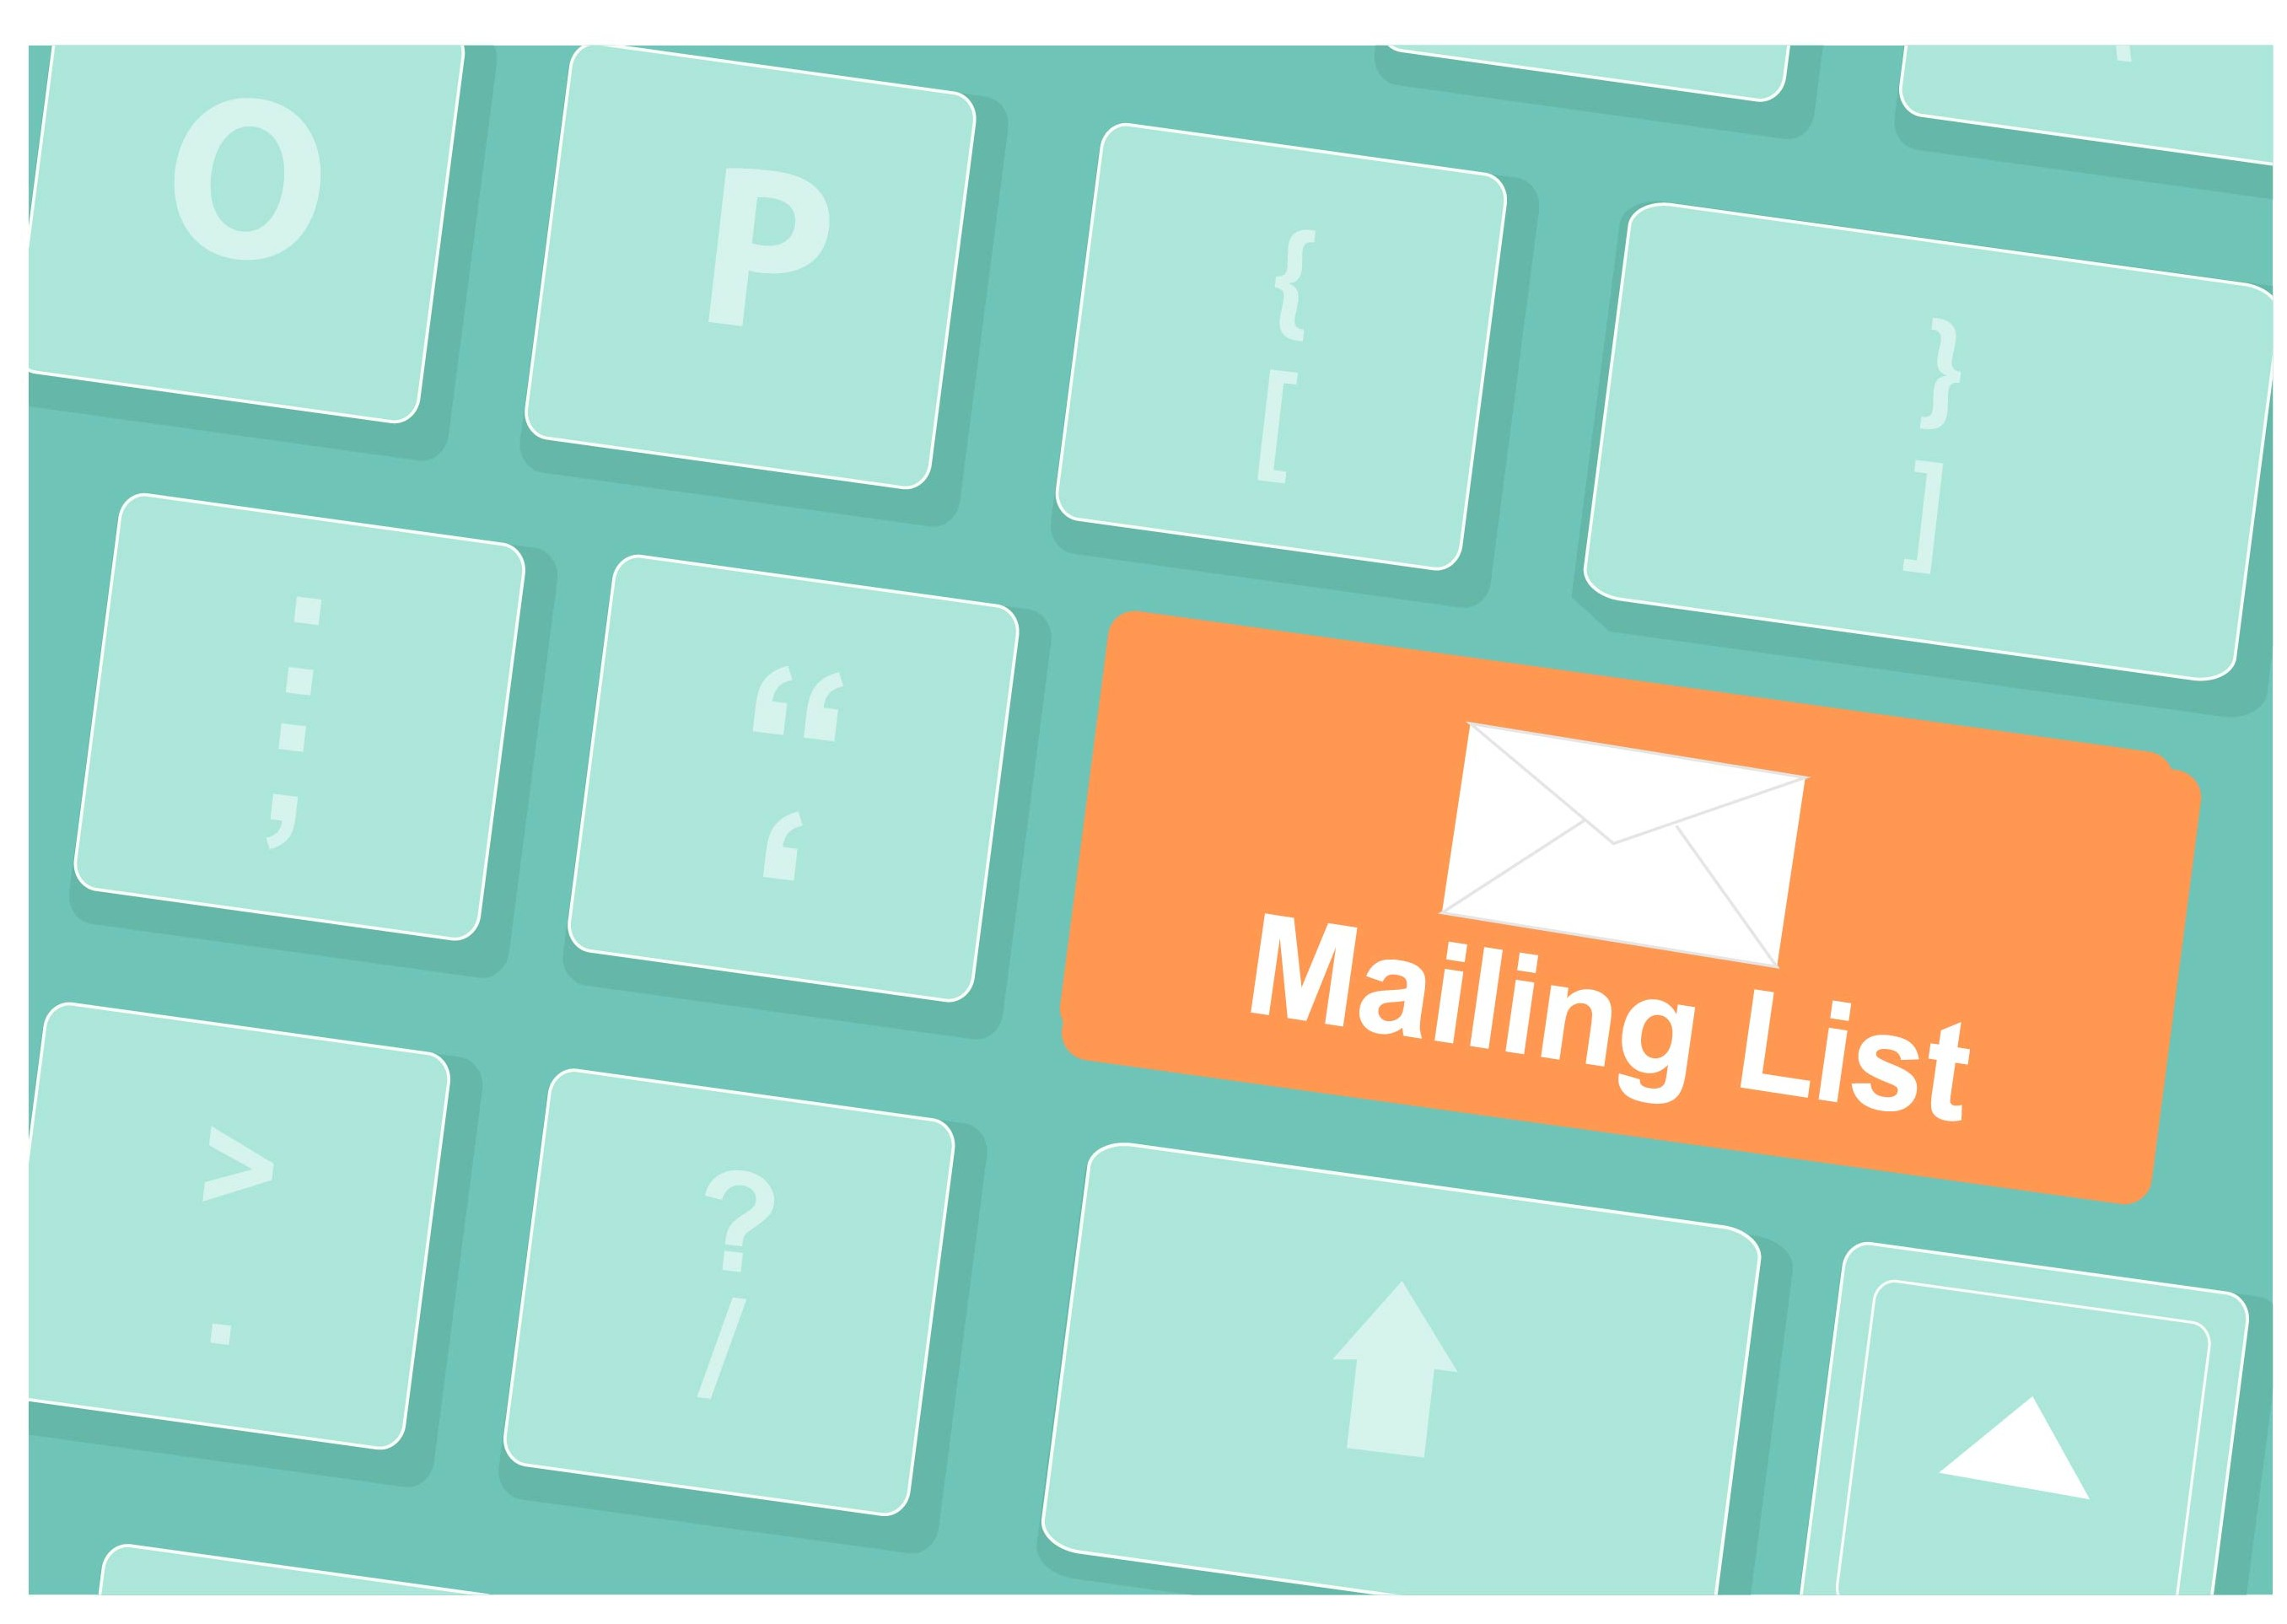 Tips for keeping on top of your email lists